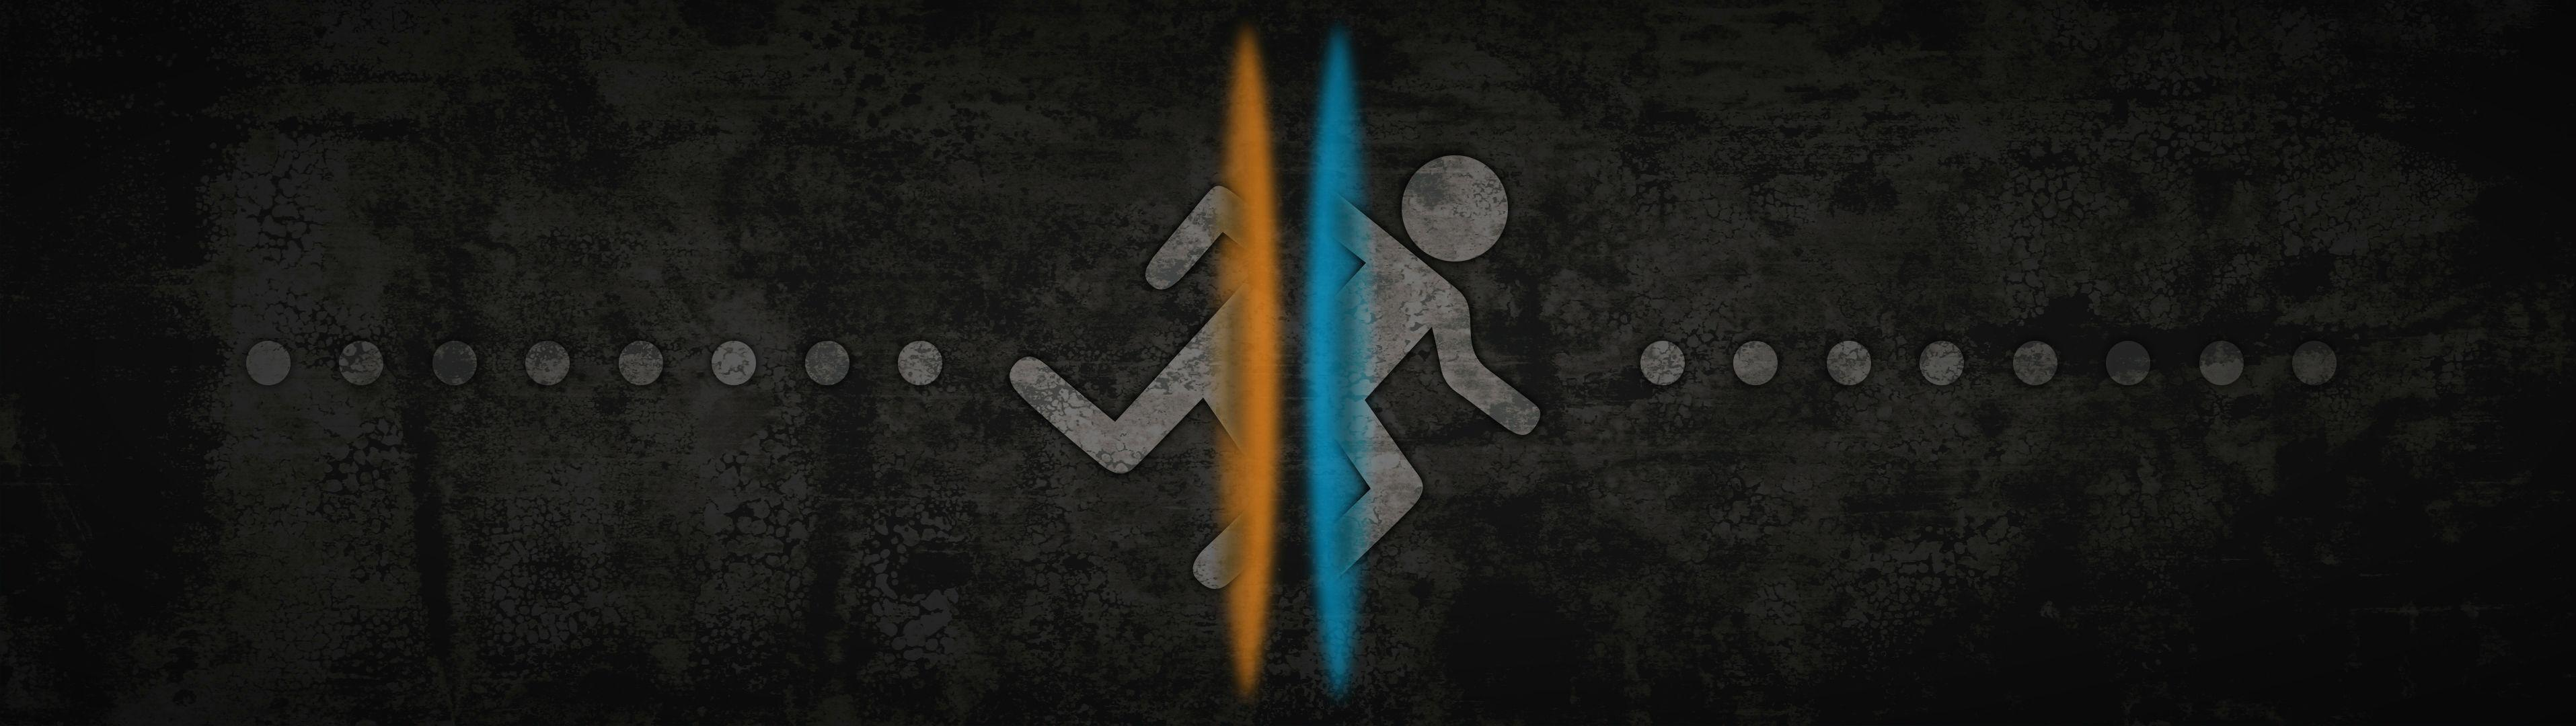 Portal 2 Dual Screen Wallpaper : gaming